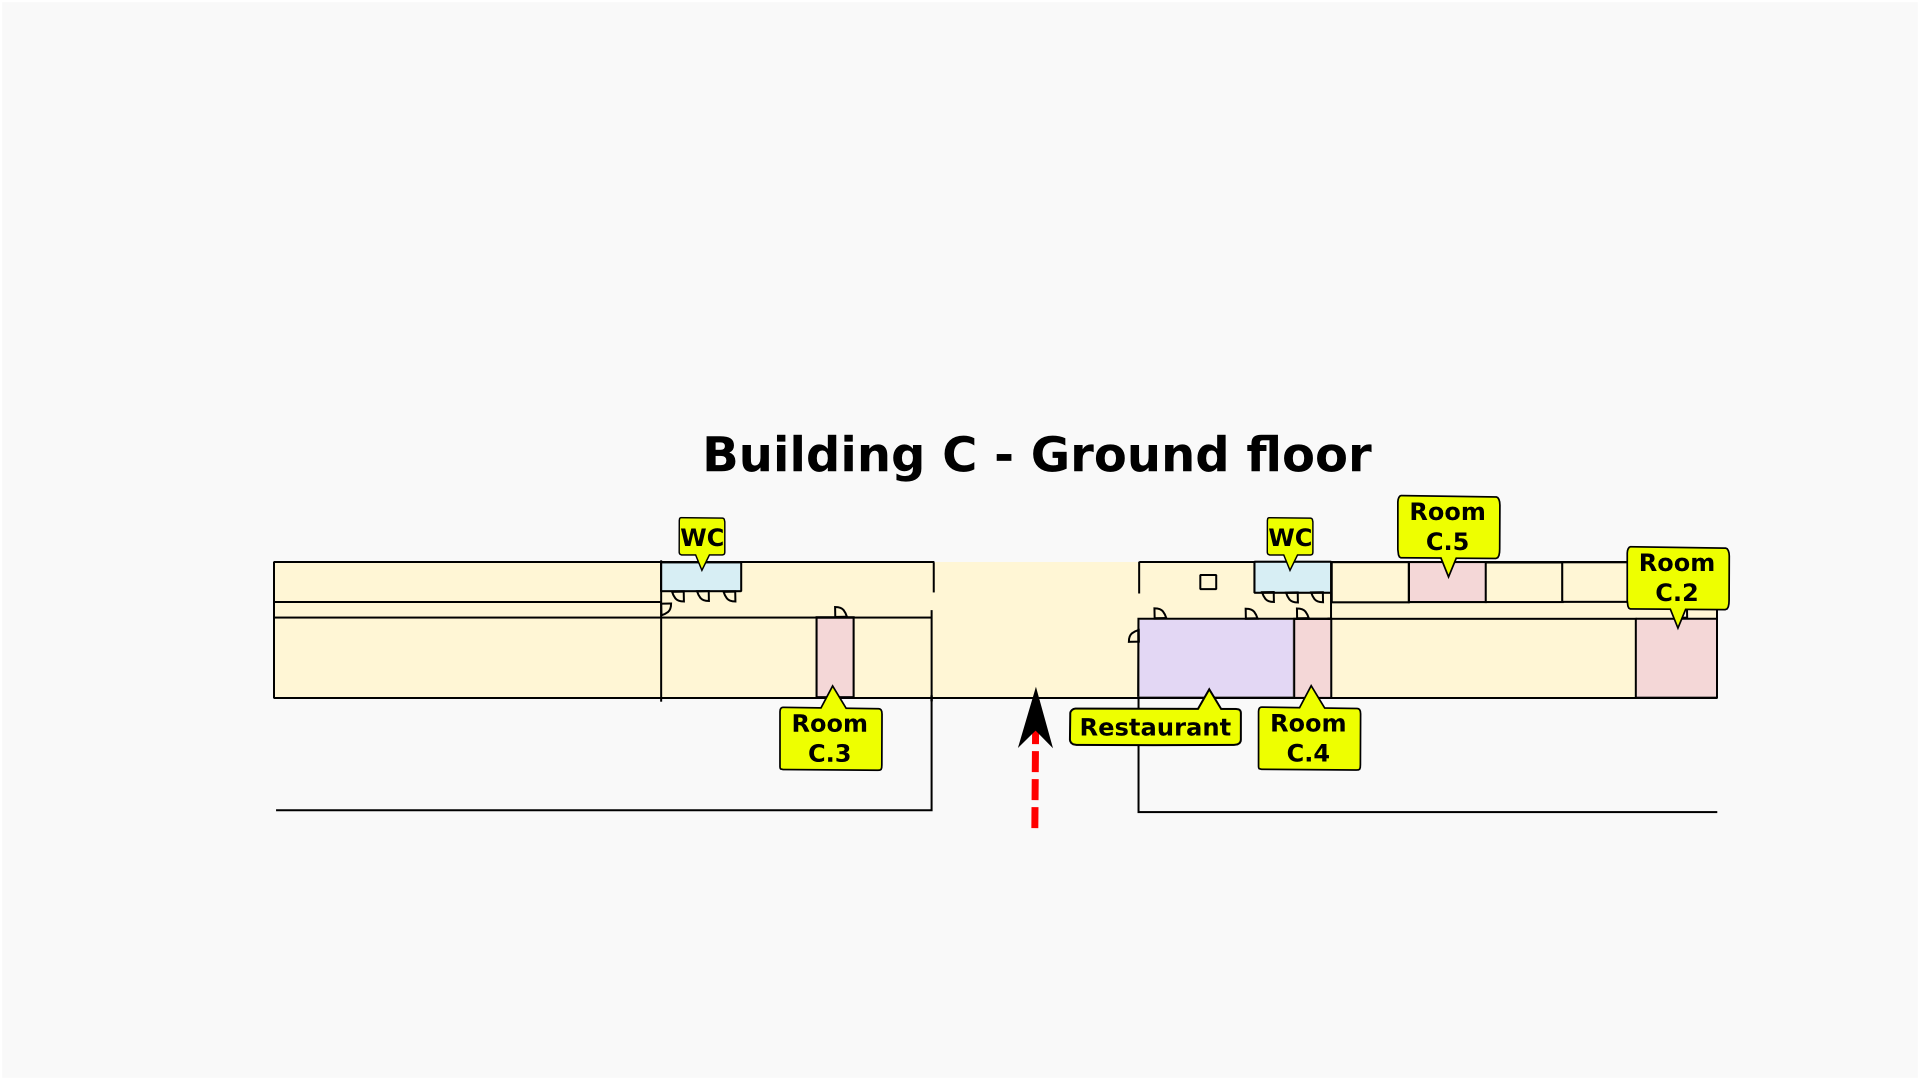 C building, ground floor